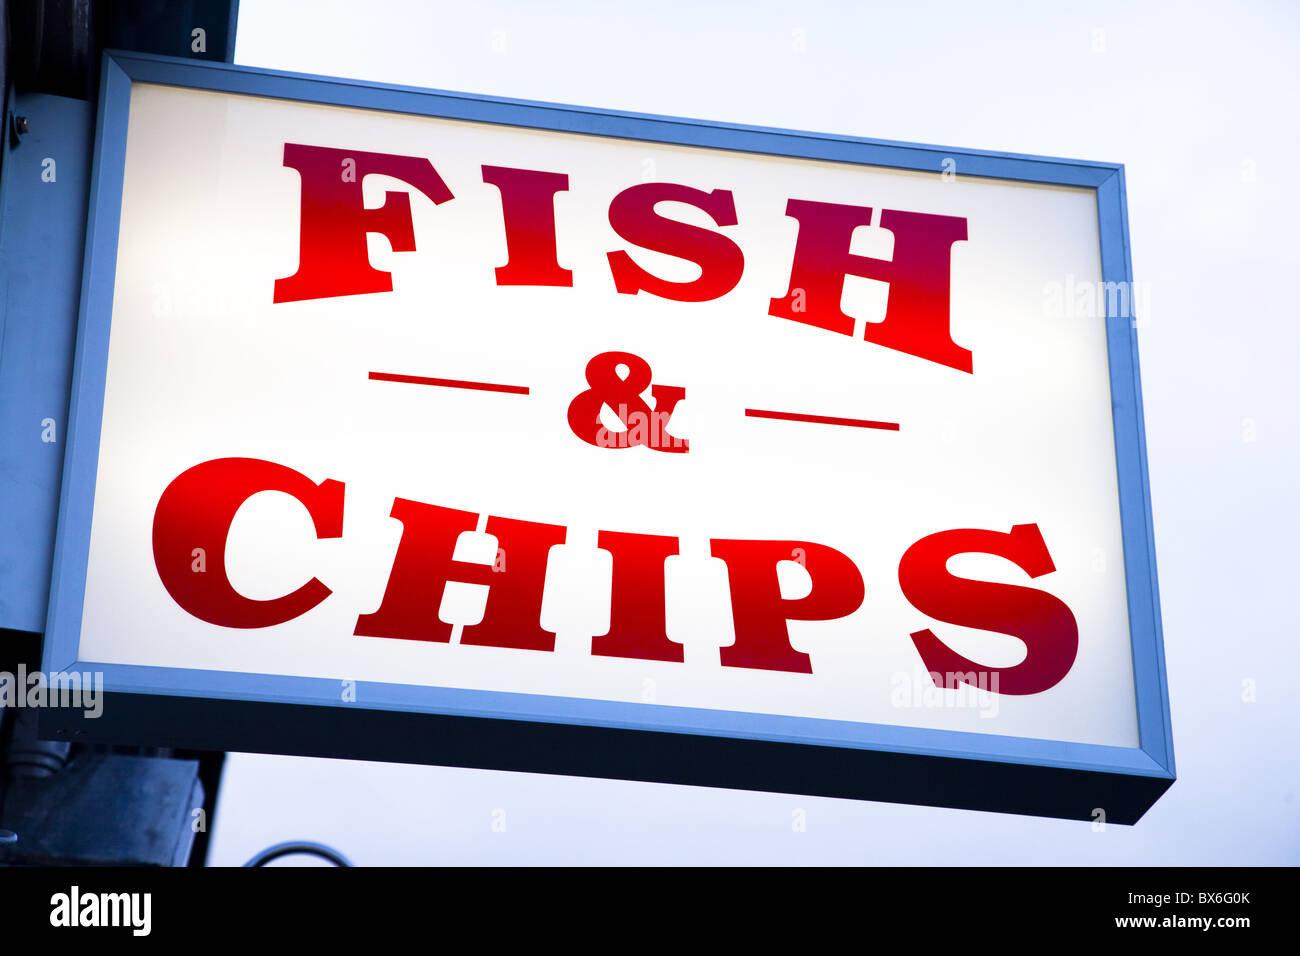 Fish and chips sign in Conwy, Clwyd, Wales, United Kingdom, Europe - Stock Image